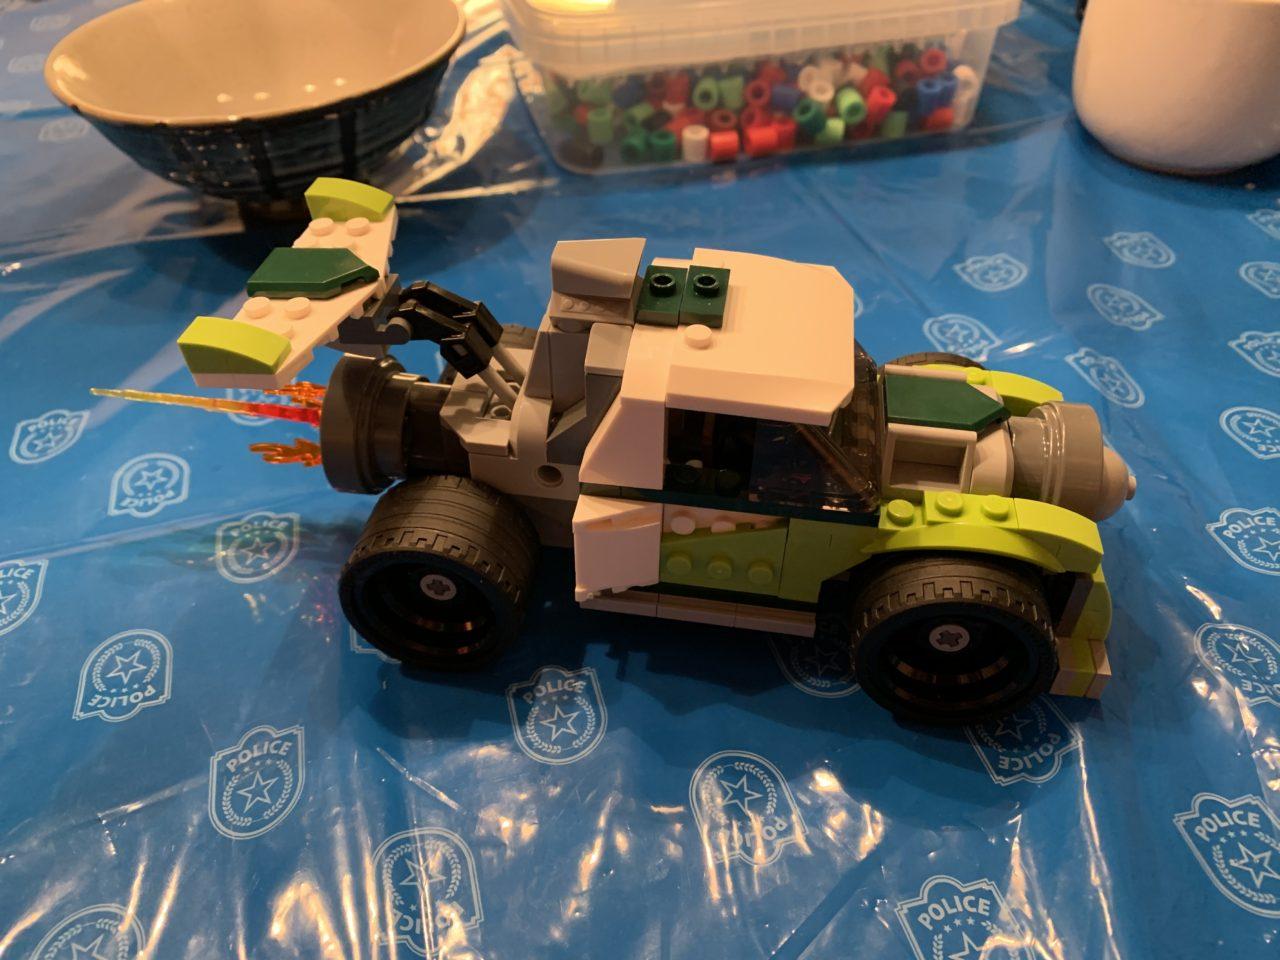 Lego Car Build On A Table In A Kid's Room